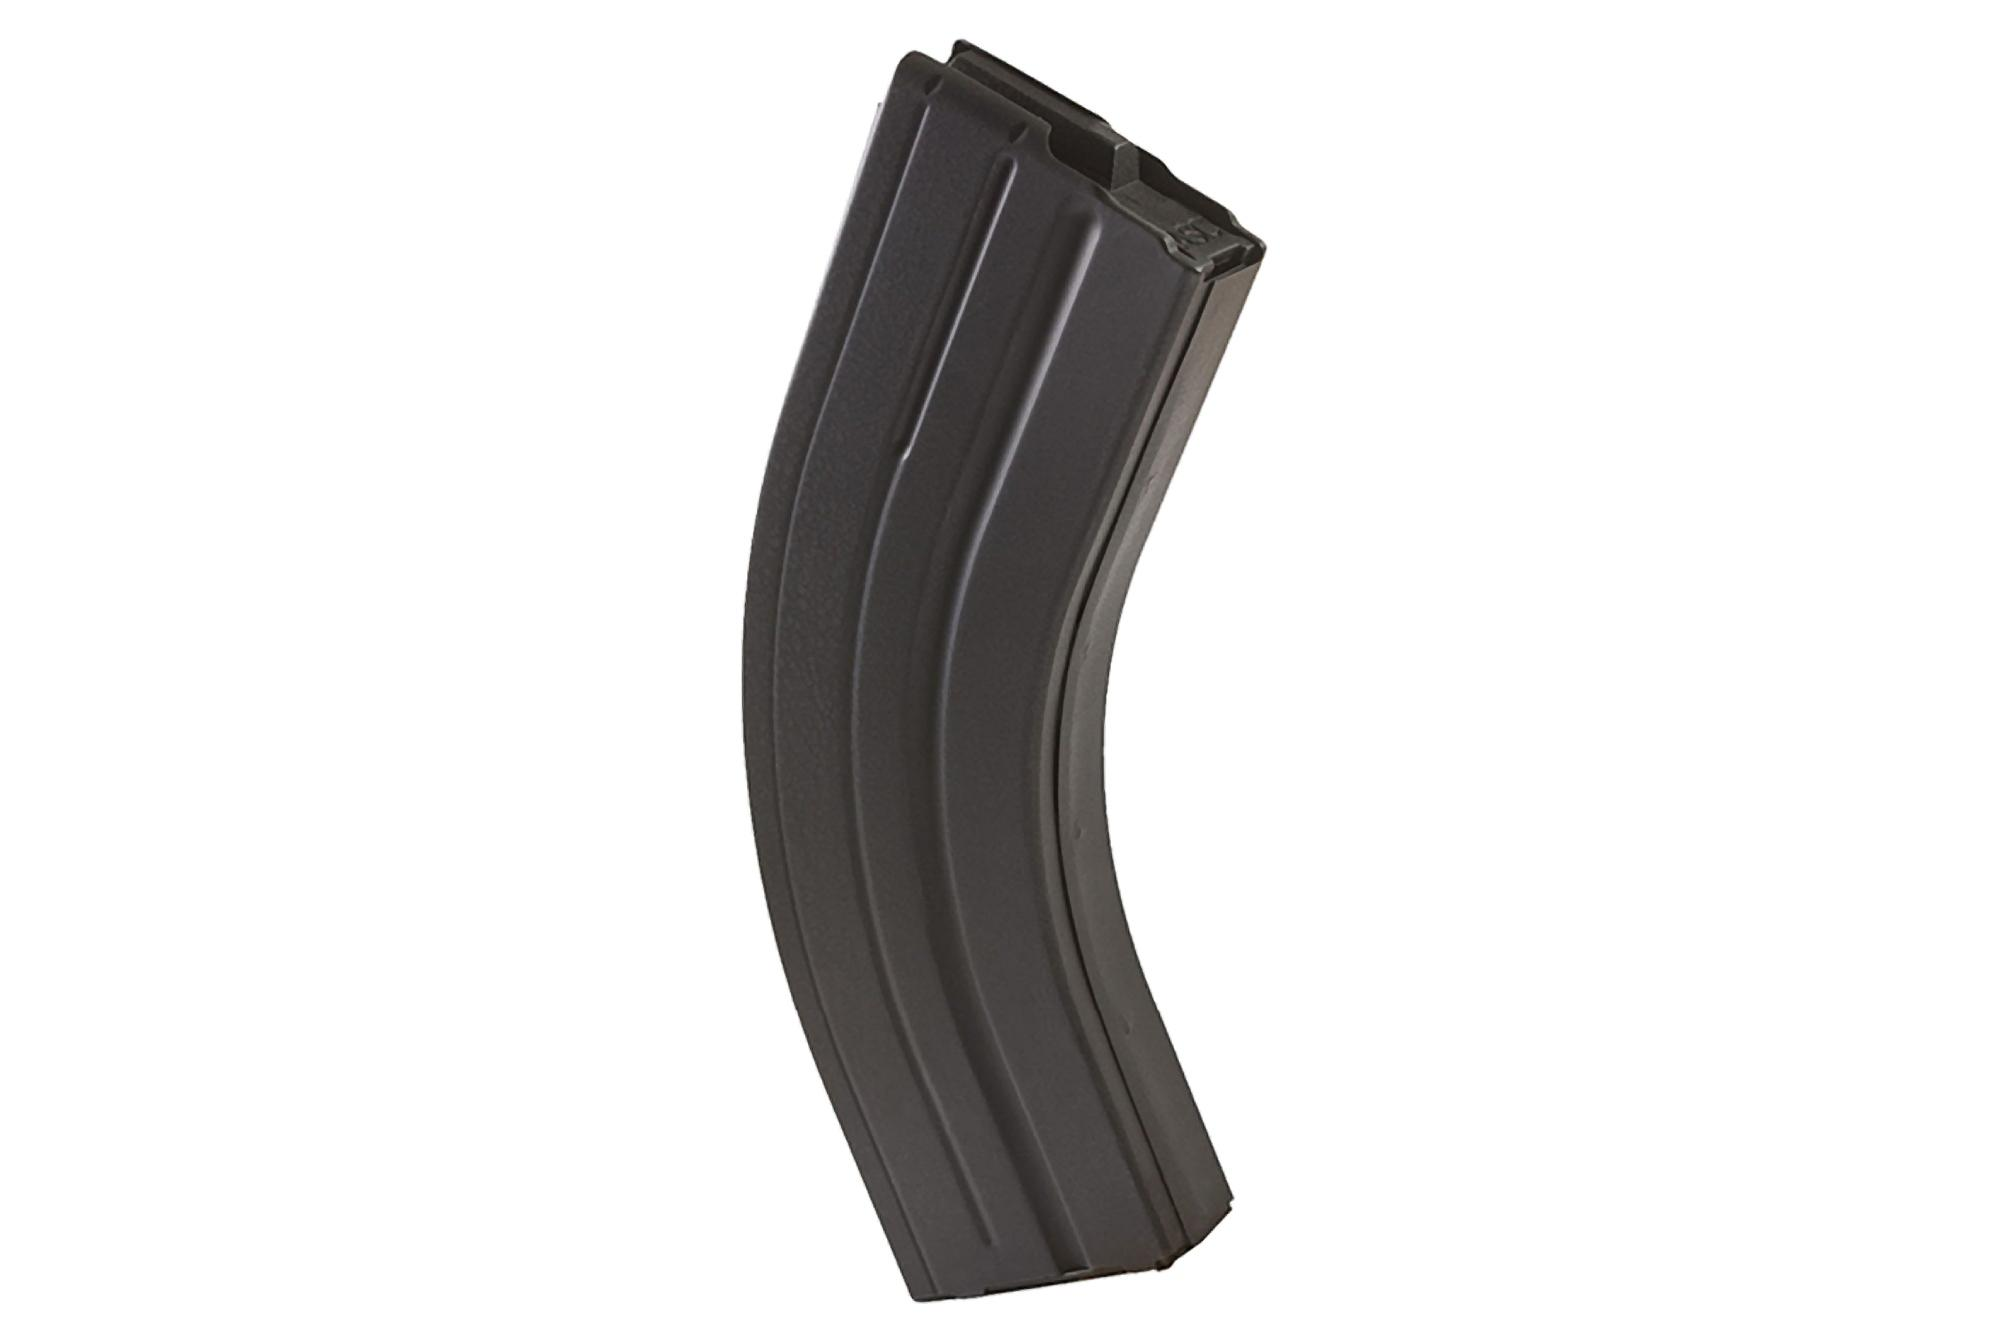 Ammunition Storage Components 7.62x39mm 30-Round AR-15 Magazine